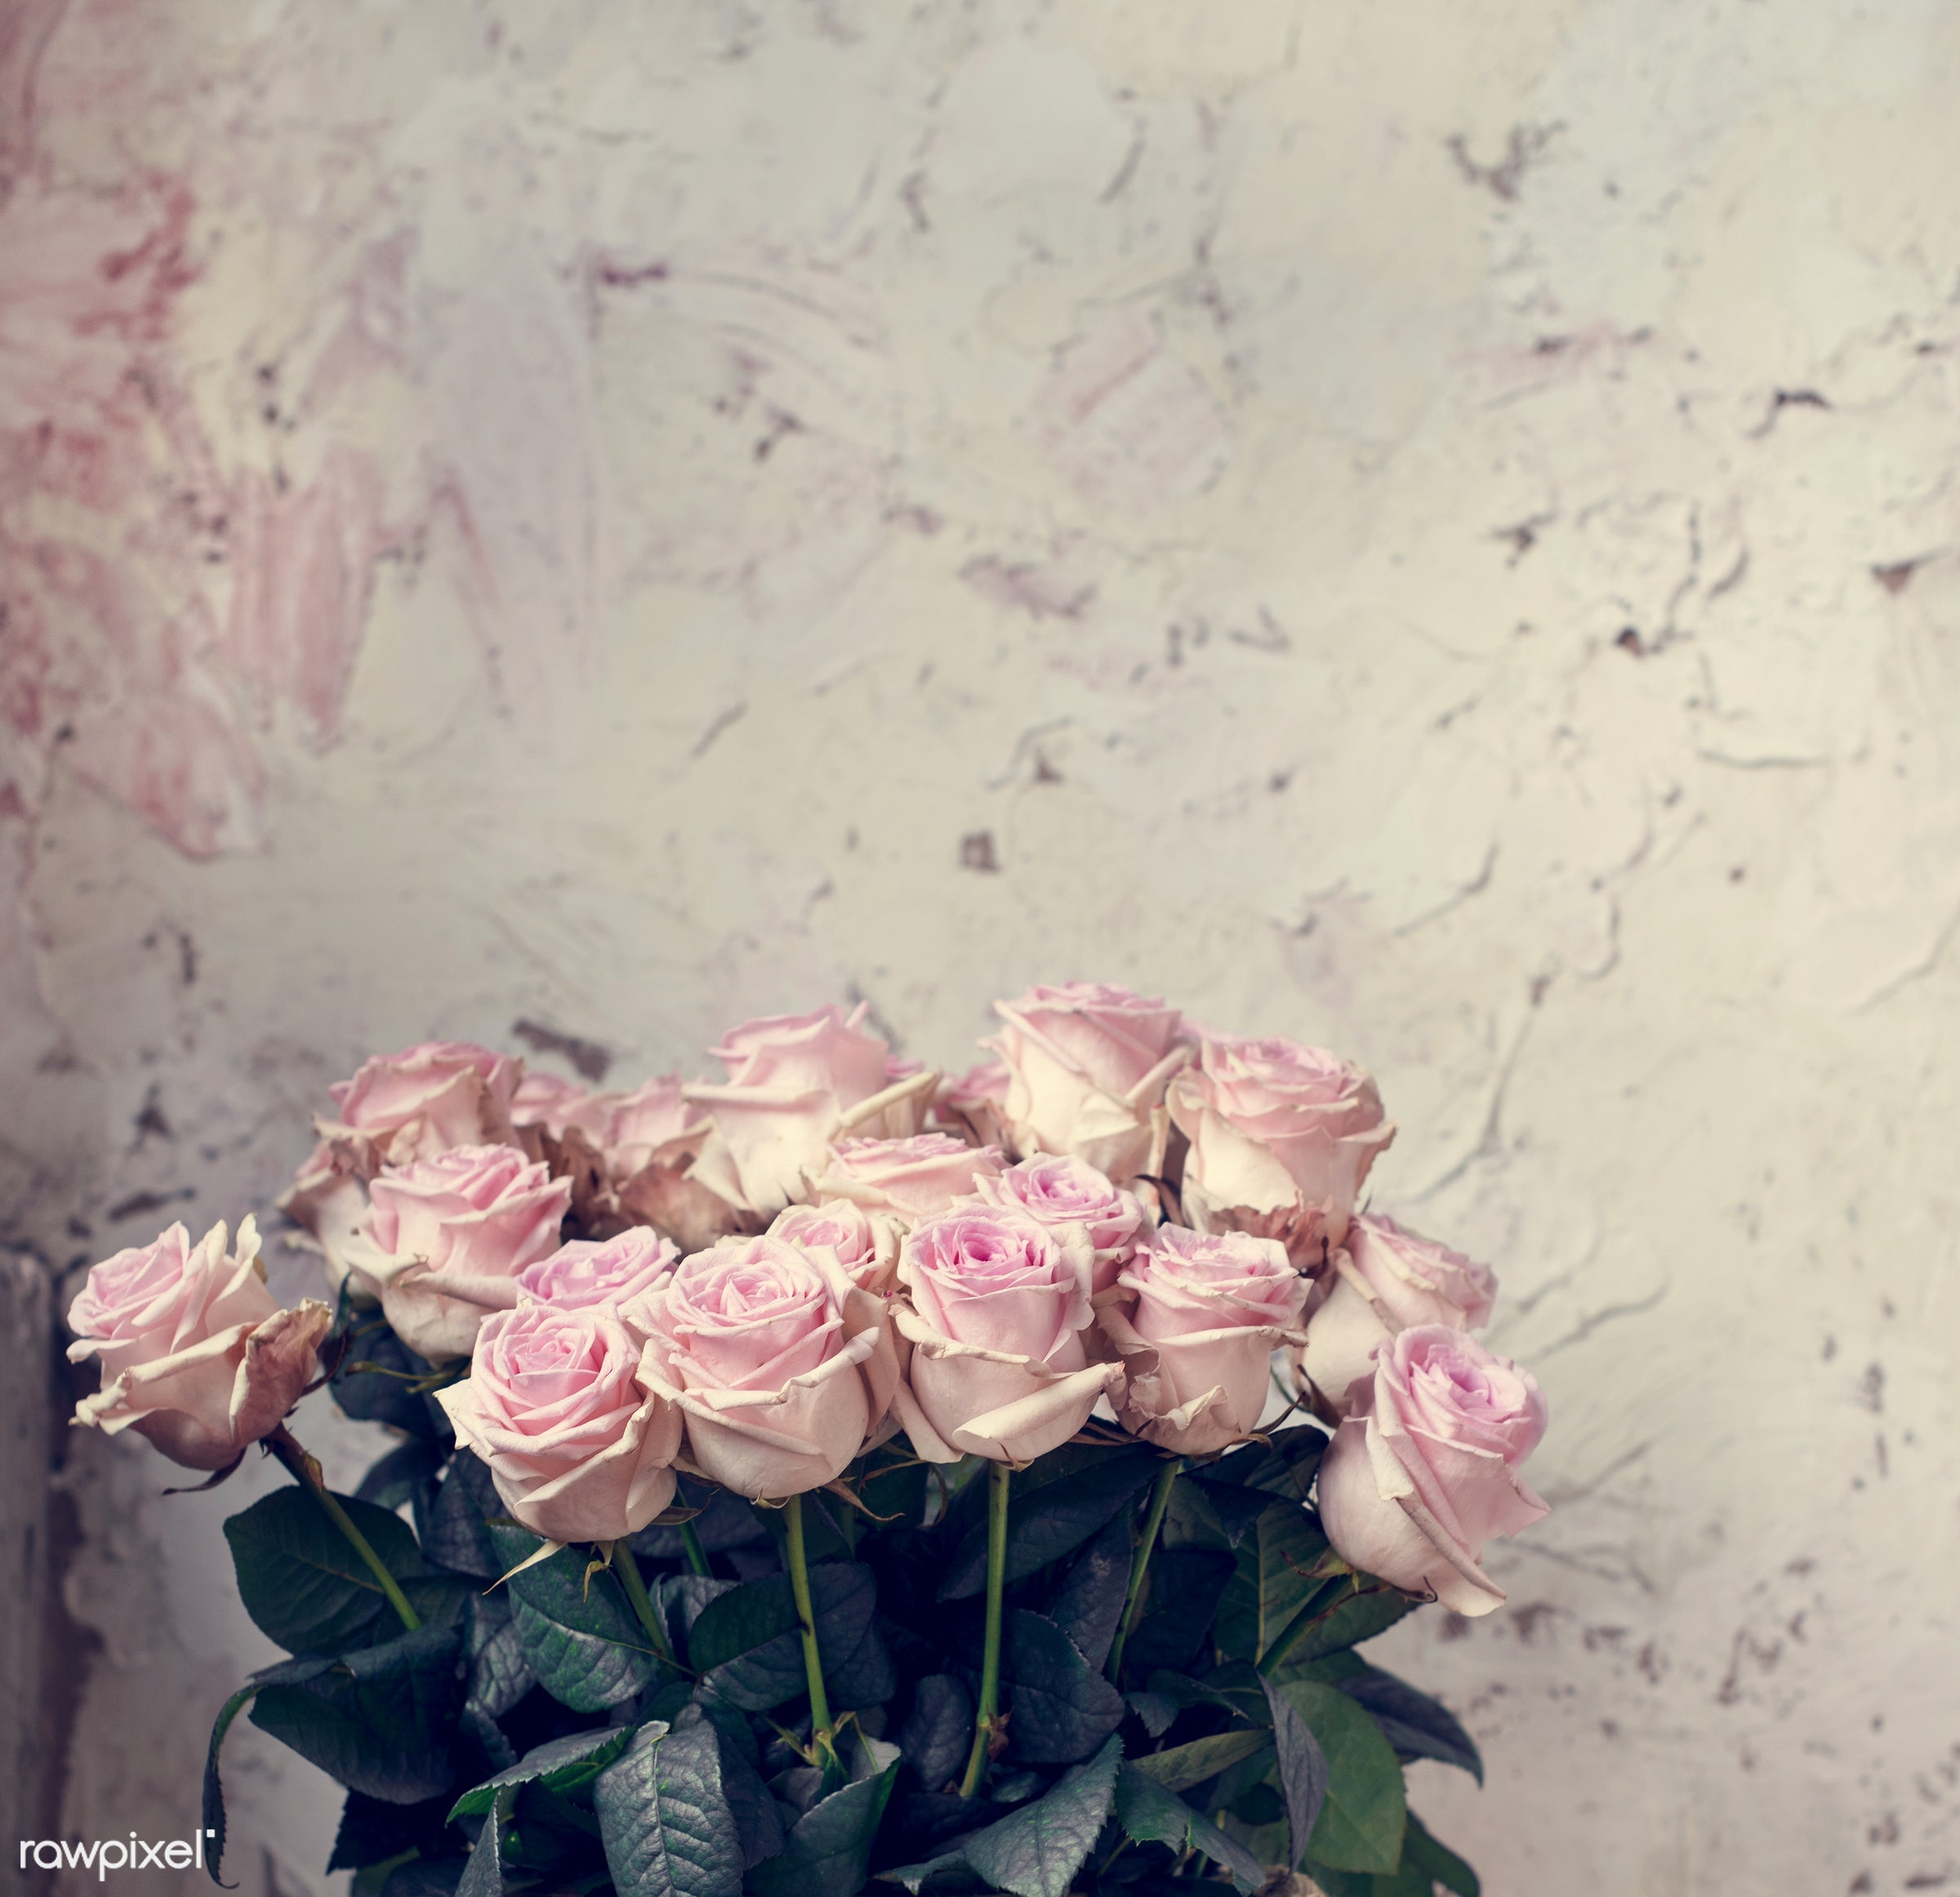 bouquet, nobody, detail, rustic, nature, metal, pink, flowers, cheerful, flower, refreshment, wallpaper, present,...